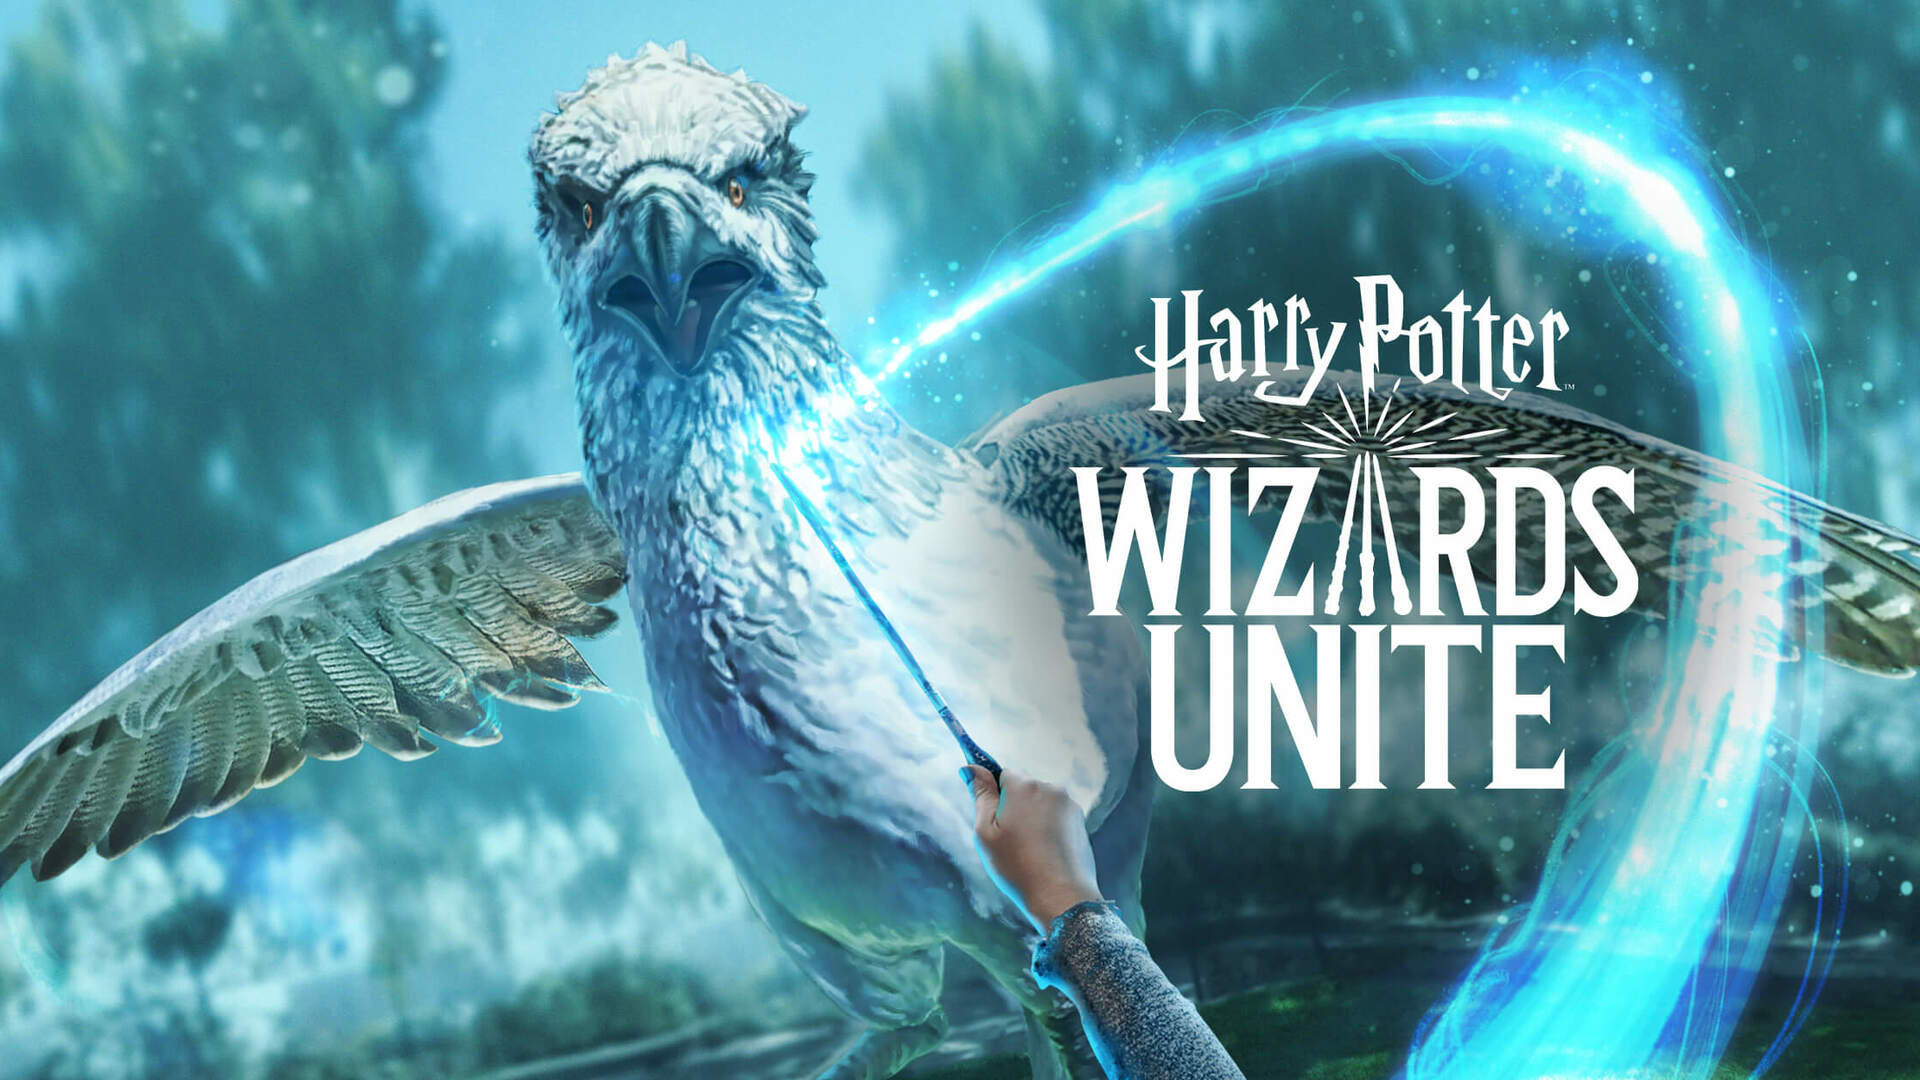 Harry Potter: Wizards Unite Launches Later This Week, Pokemon Go